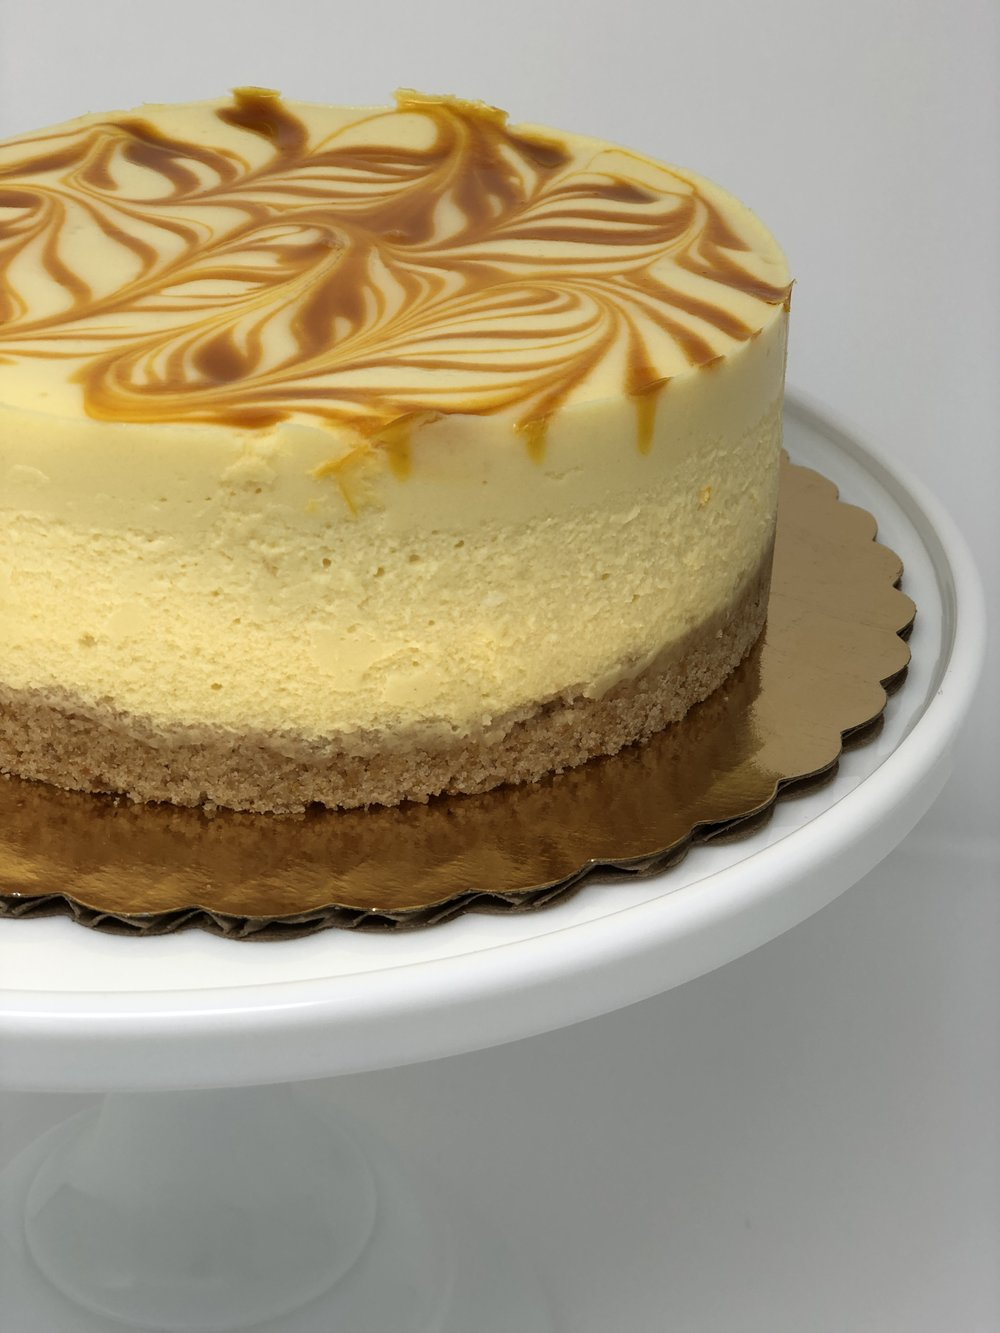 CALAMANSI MANGO CHEESECAKE - Tart and creamy, this cheesecake is inspired by the classic lemony cheesecake and swirled with an all natural mango puree. Instead of fresh lemons, calamansi takes front stage. The Calamansi, also known as the Calamondin orange, is mainly cultivated in the Philippines, and is a small fruit which looks similar to a lime and descends from the mandarin orange.